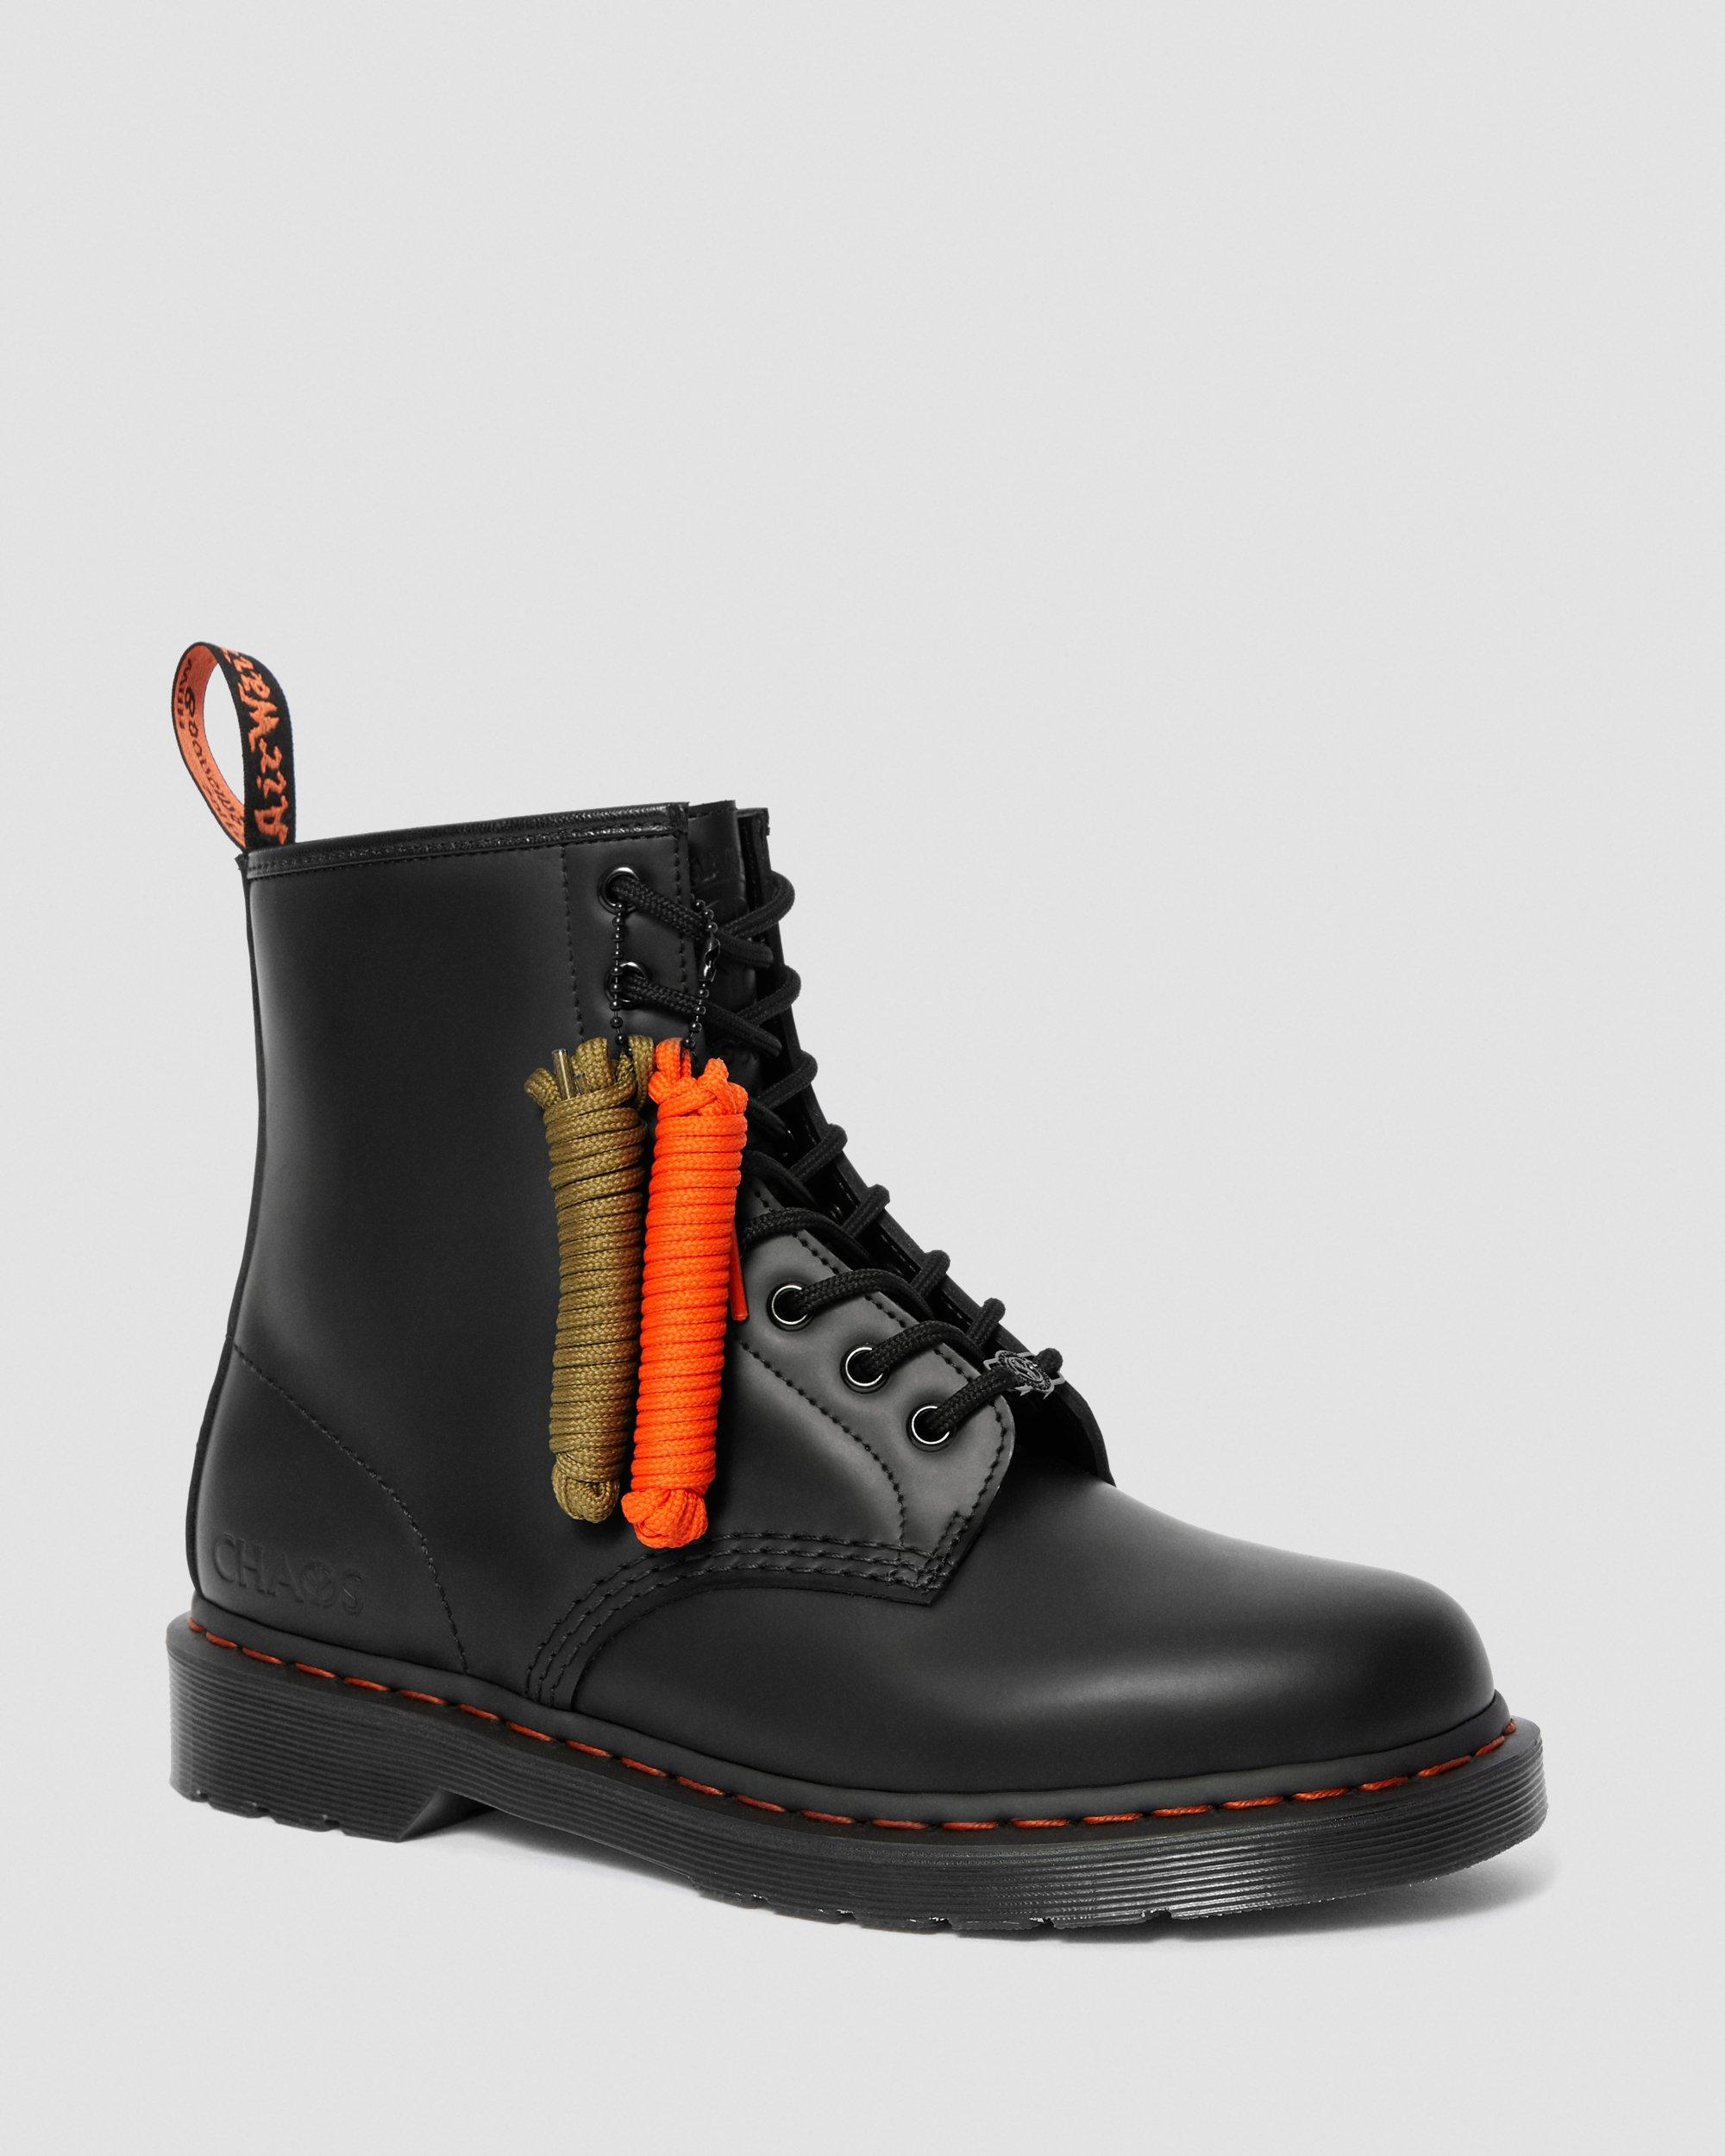 Dr. Martens and Beams collaboration | Dr. Martens